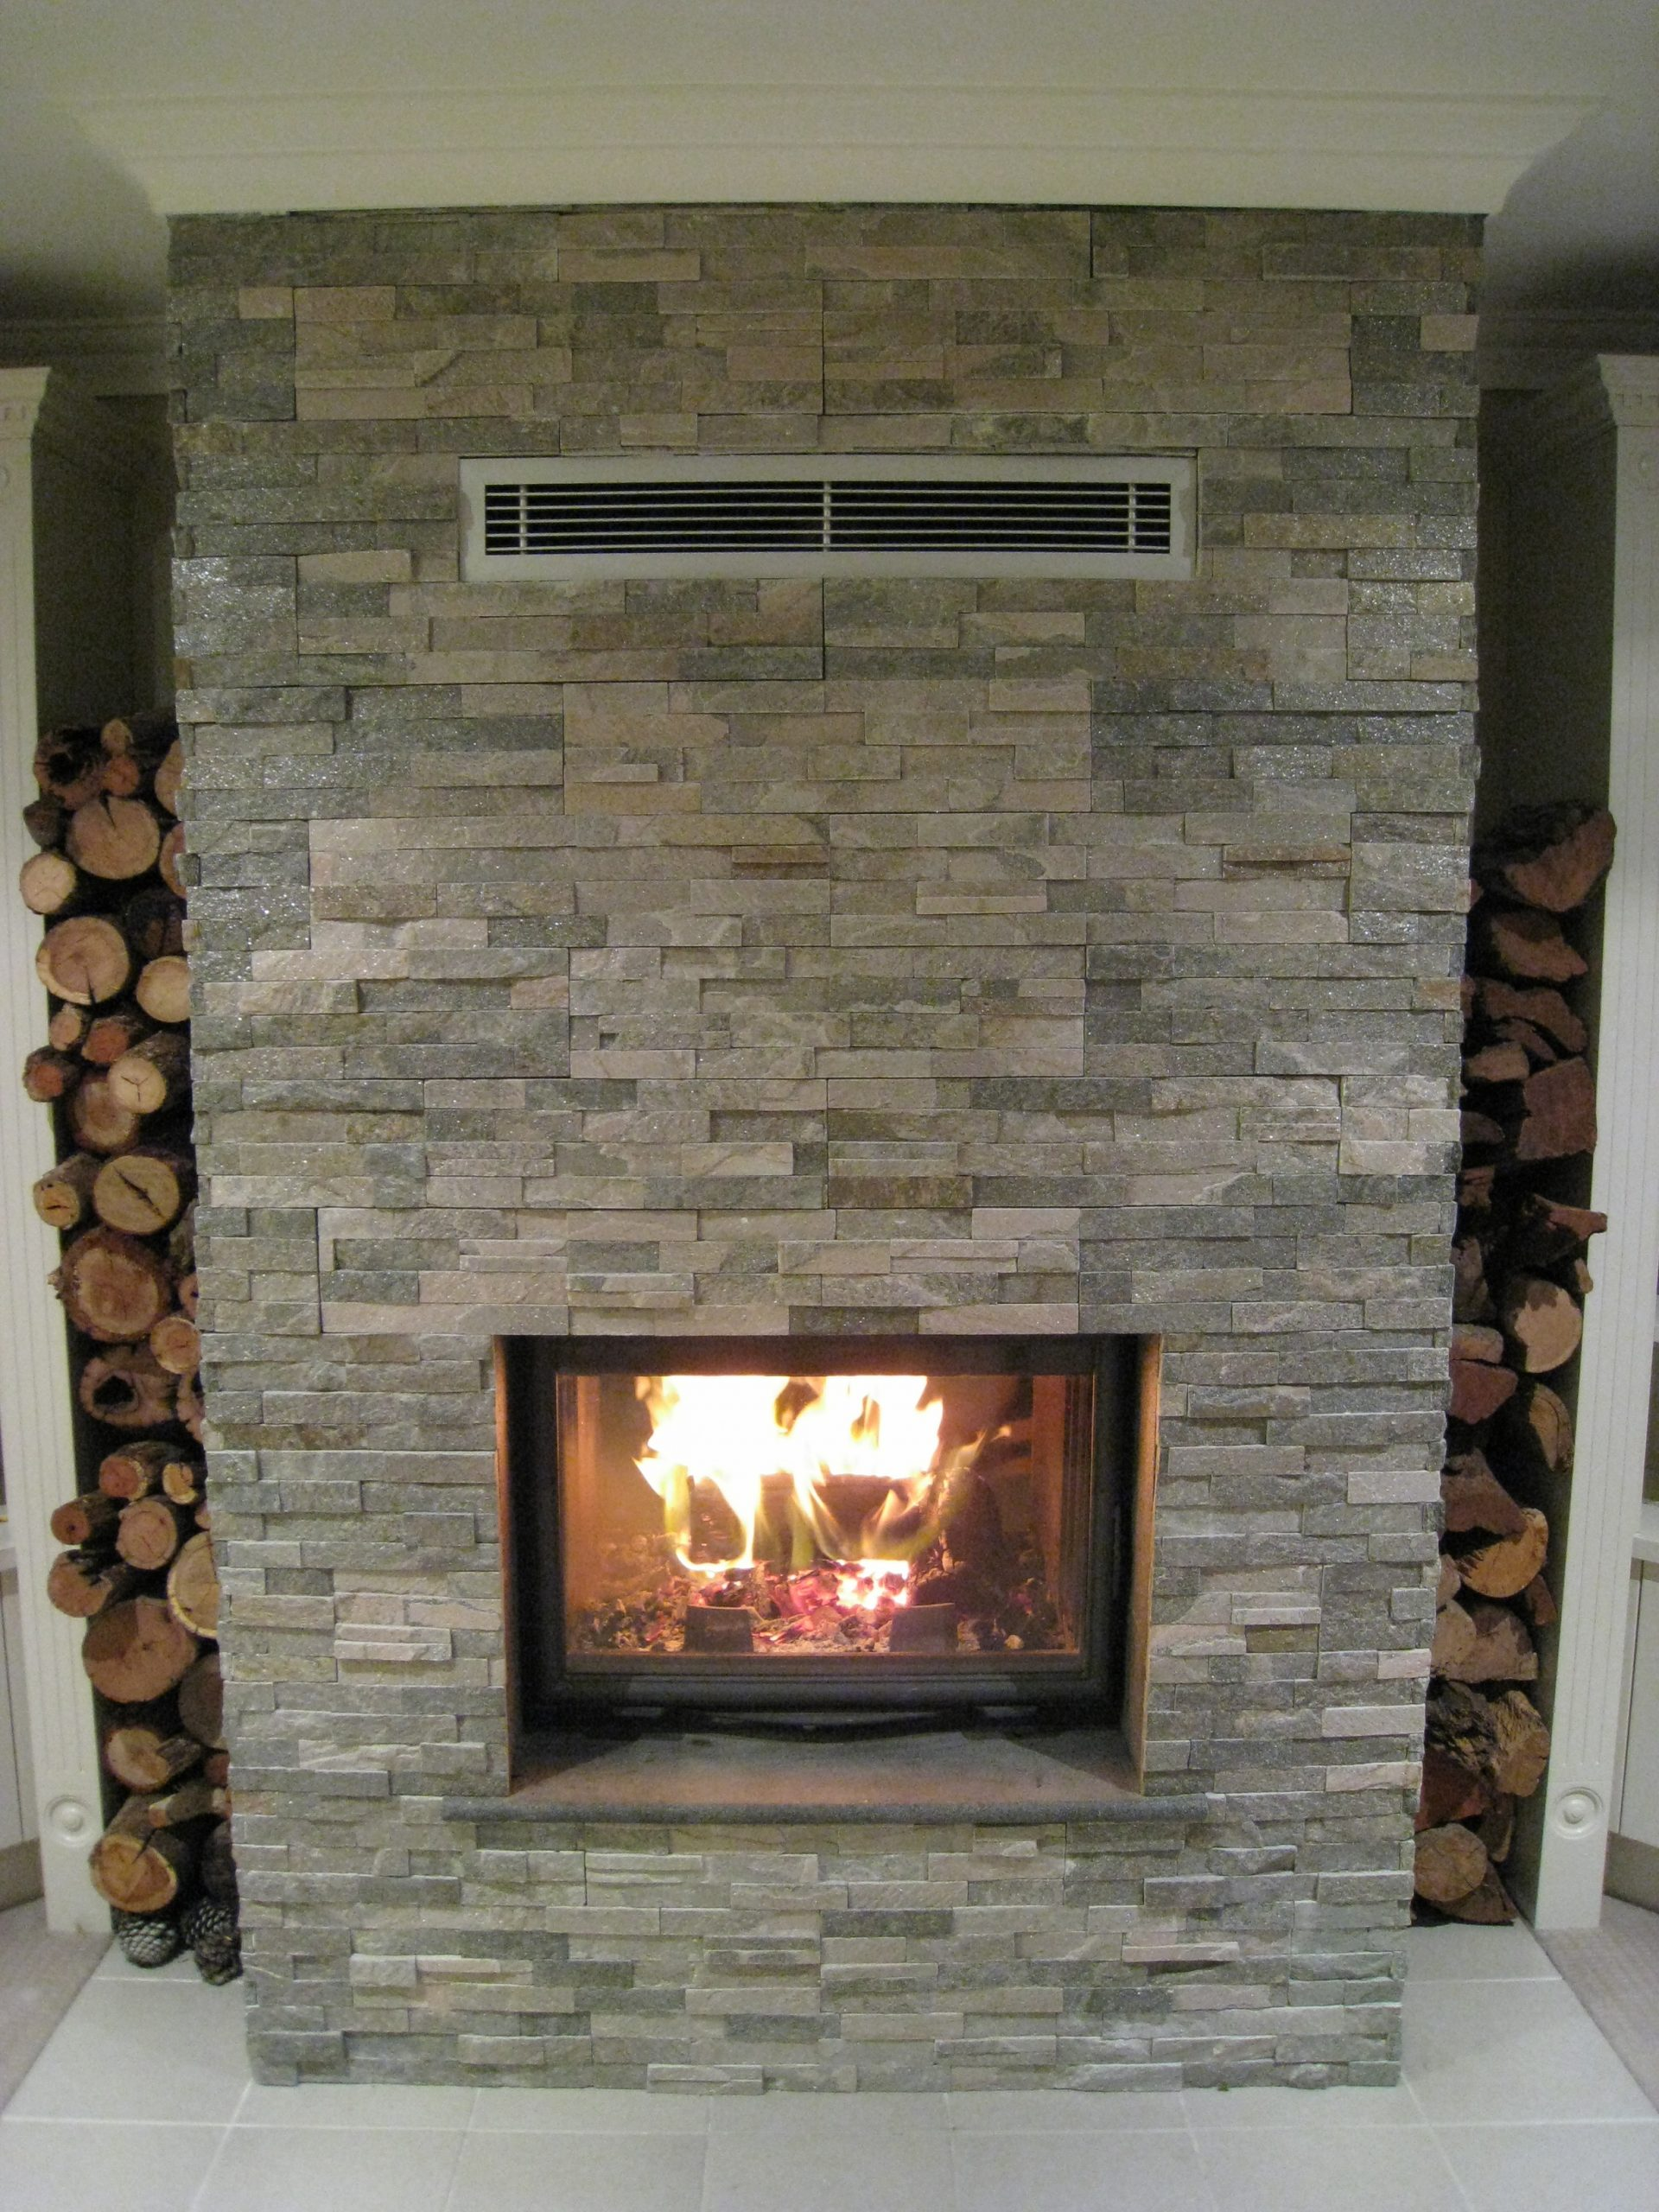 cheminee chazelle cdf800r radiant wood fireplace